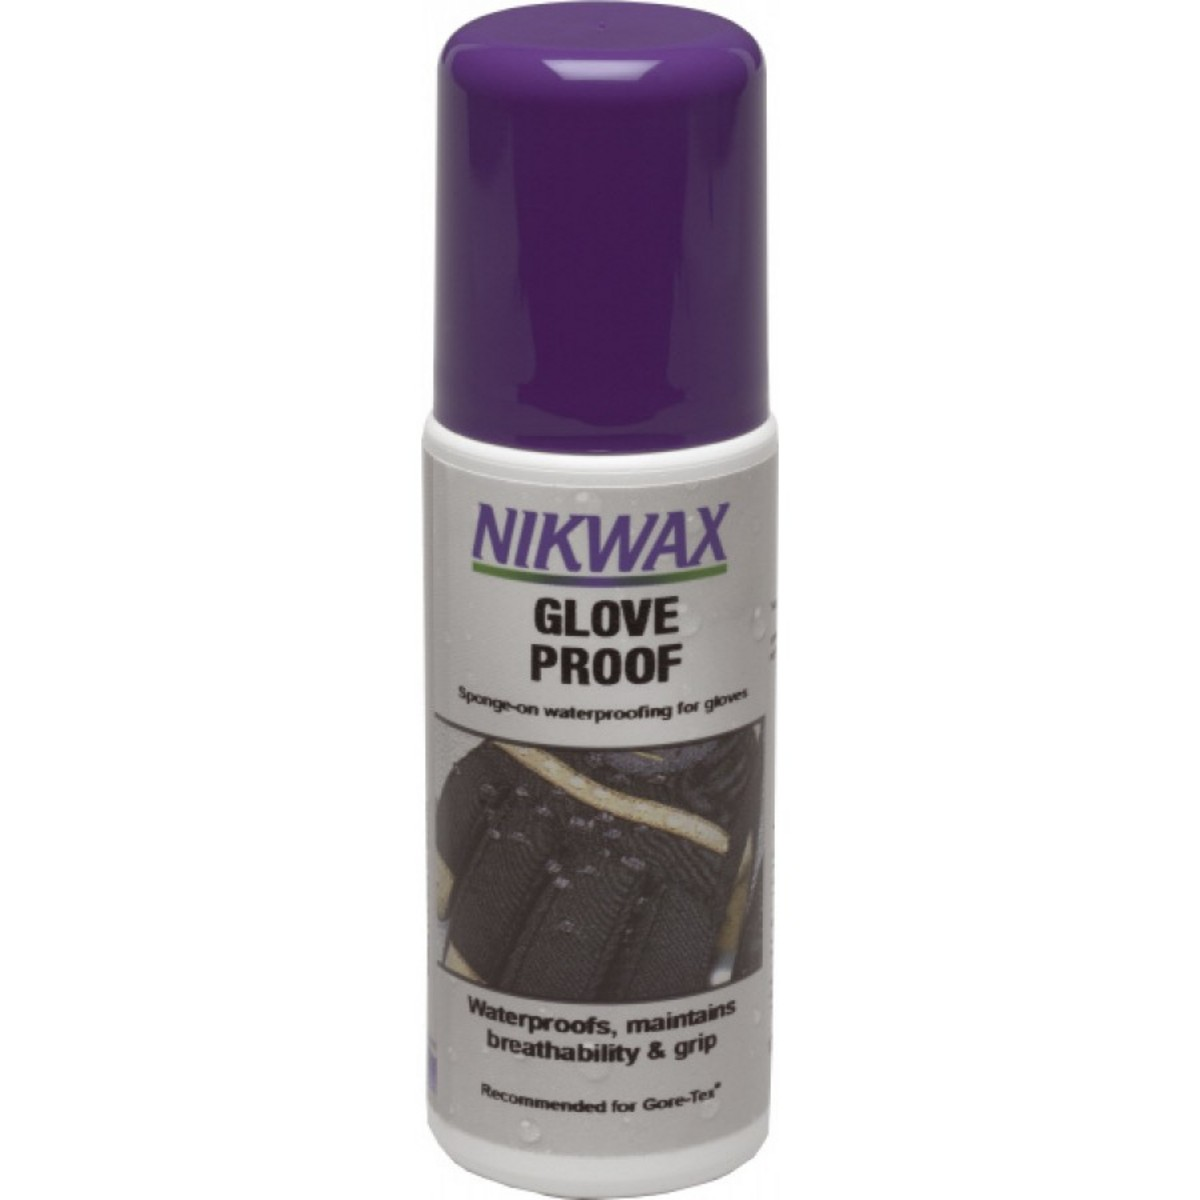 Nikwax Glove Proof Waterproofing